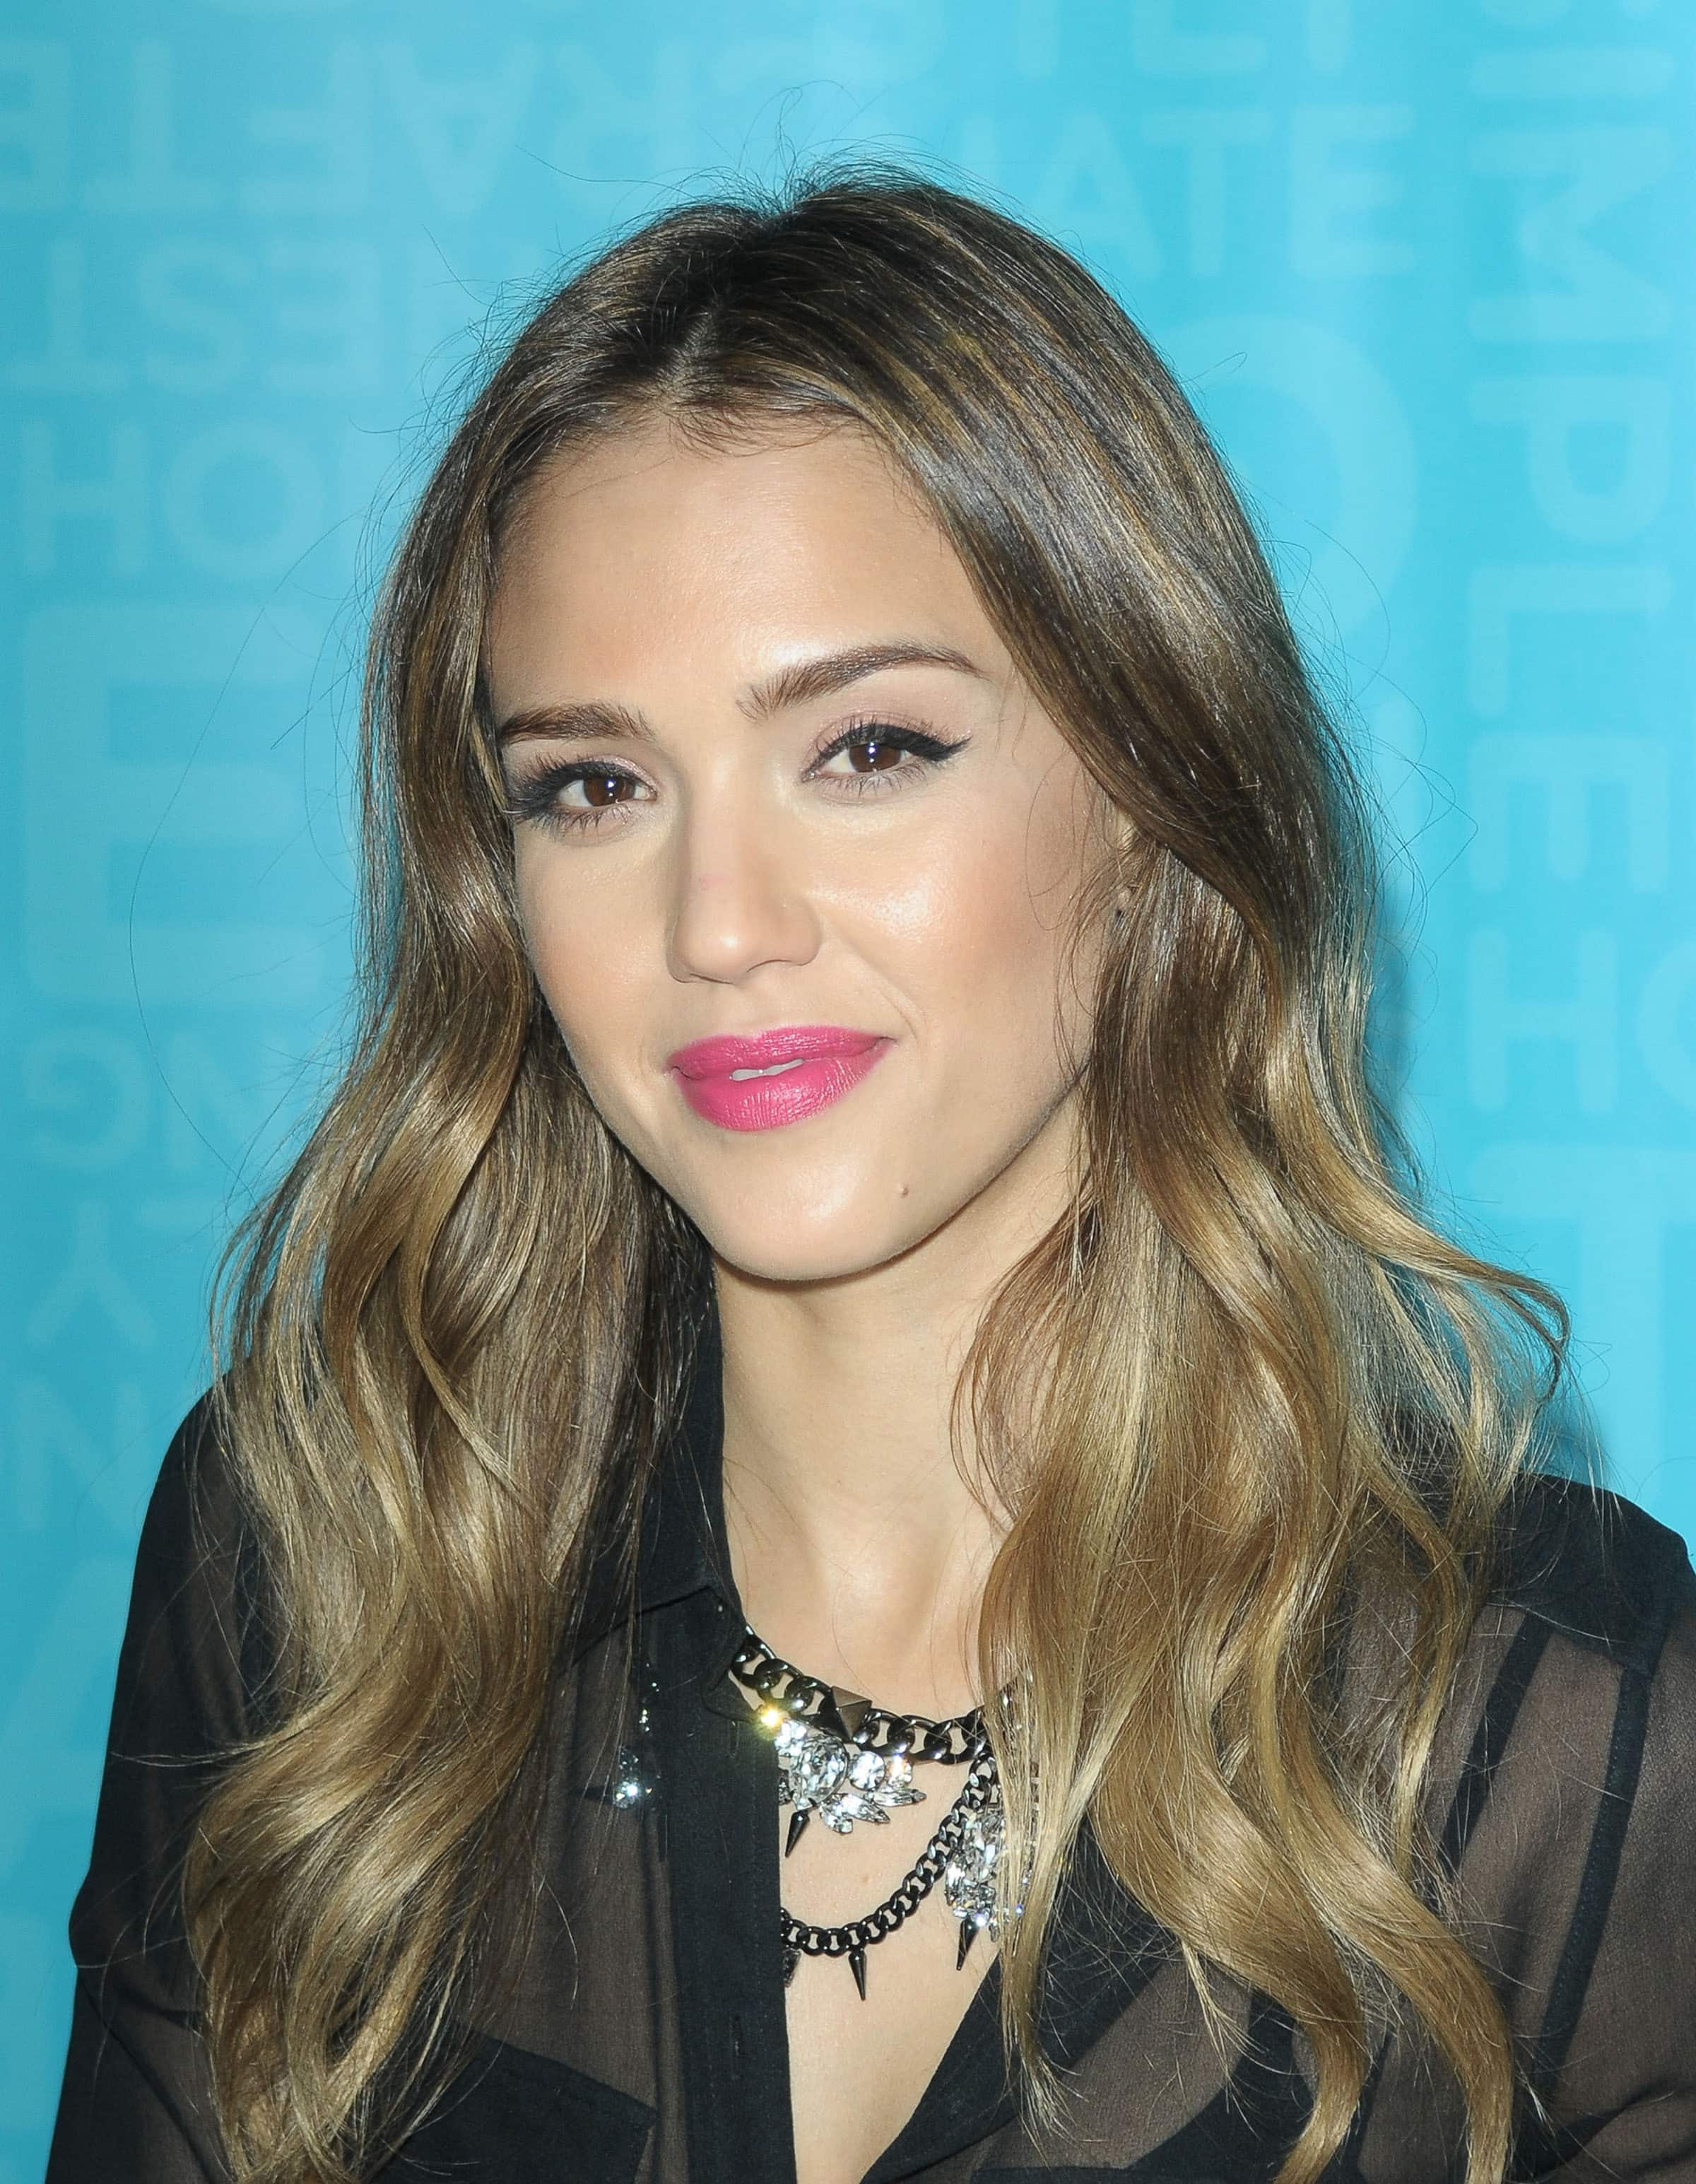 Jessica Alba signs copies of her book 'The Honest Life: Living Naturally and True to You' and greets fans at Coral Gables Congregational Church